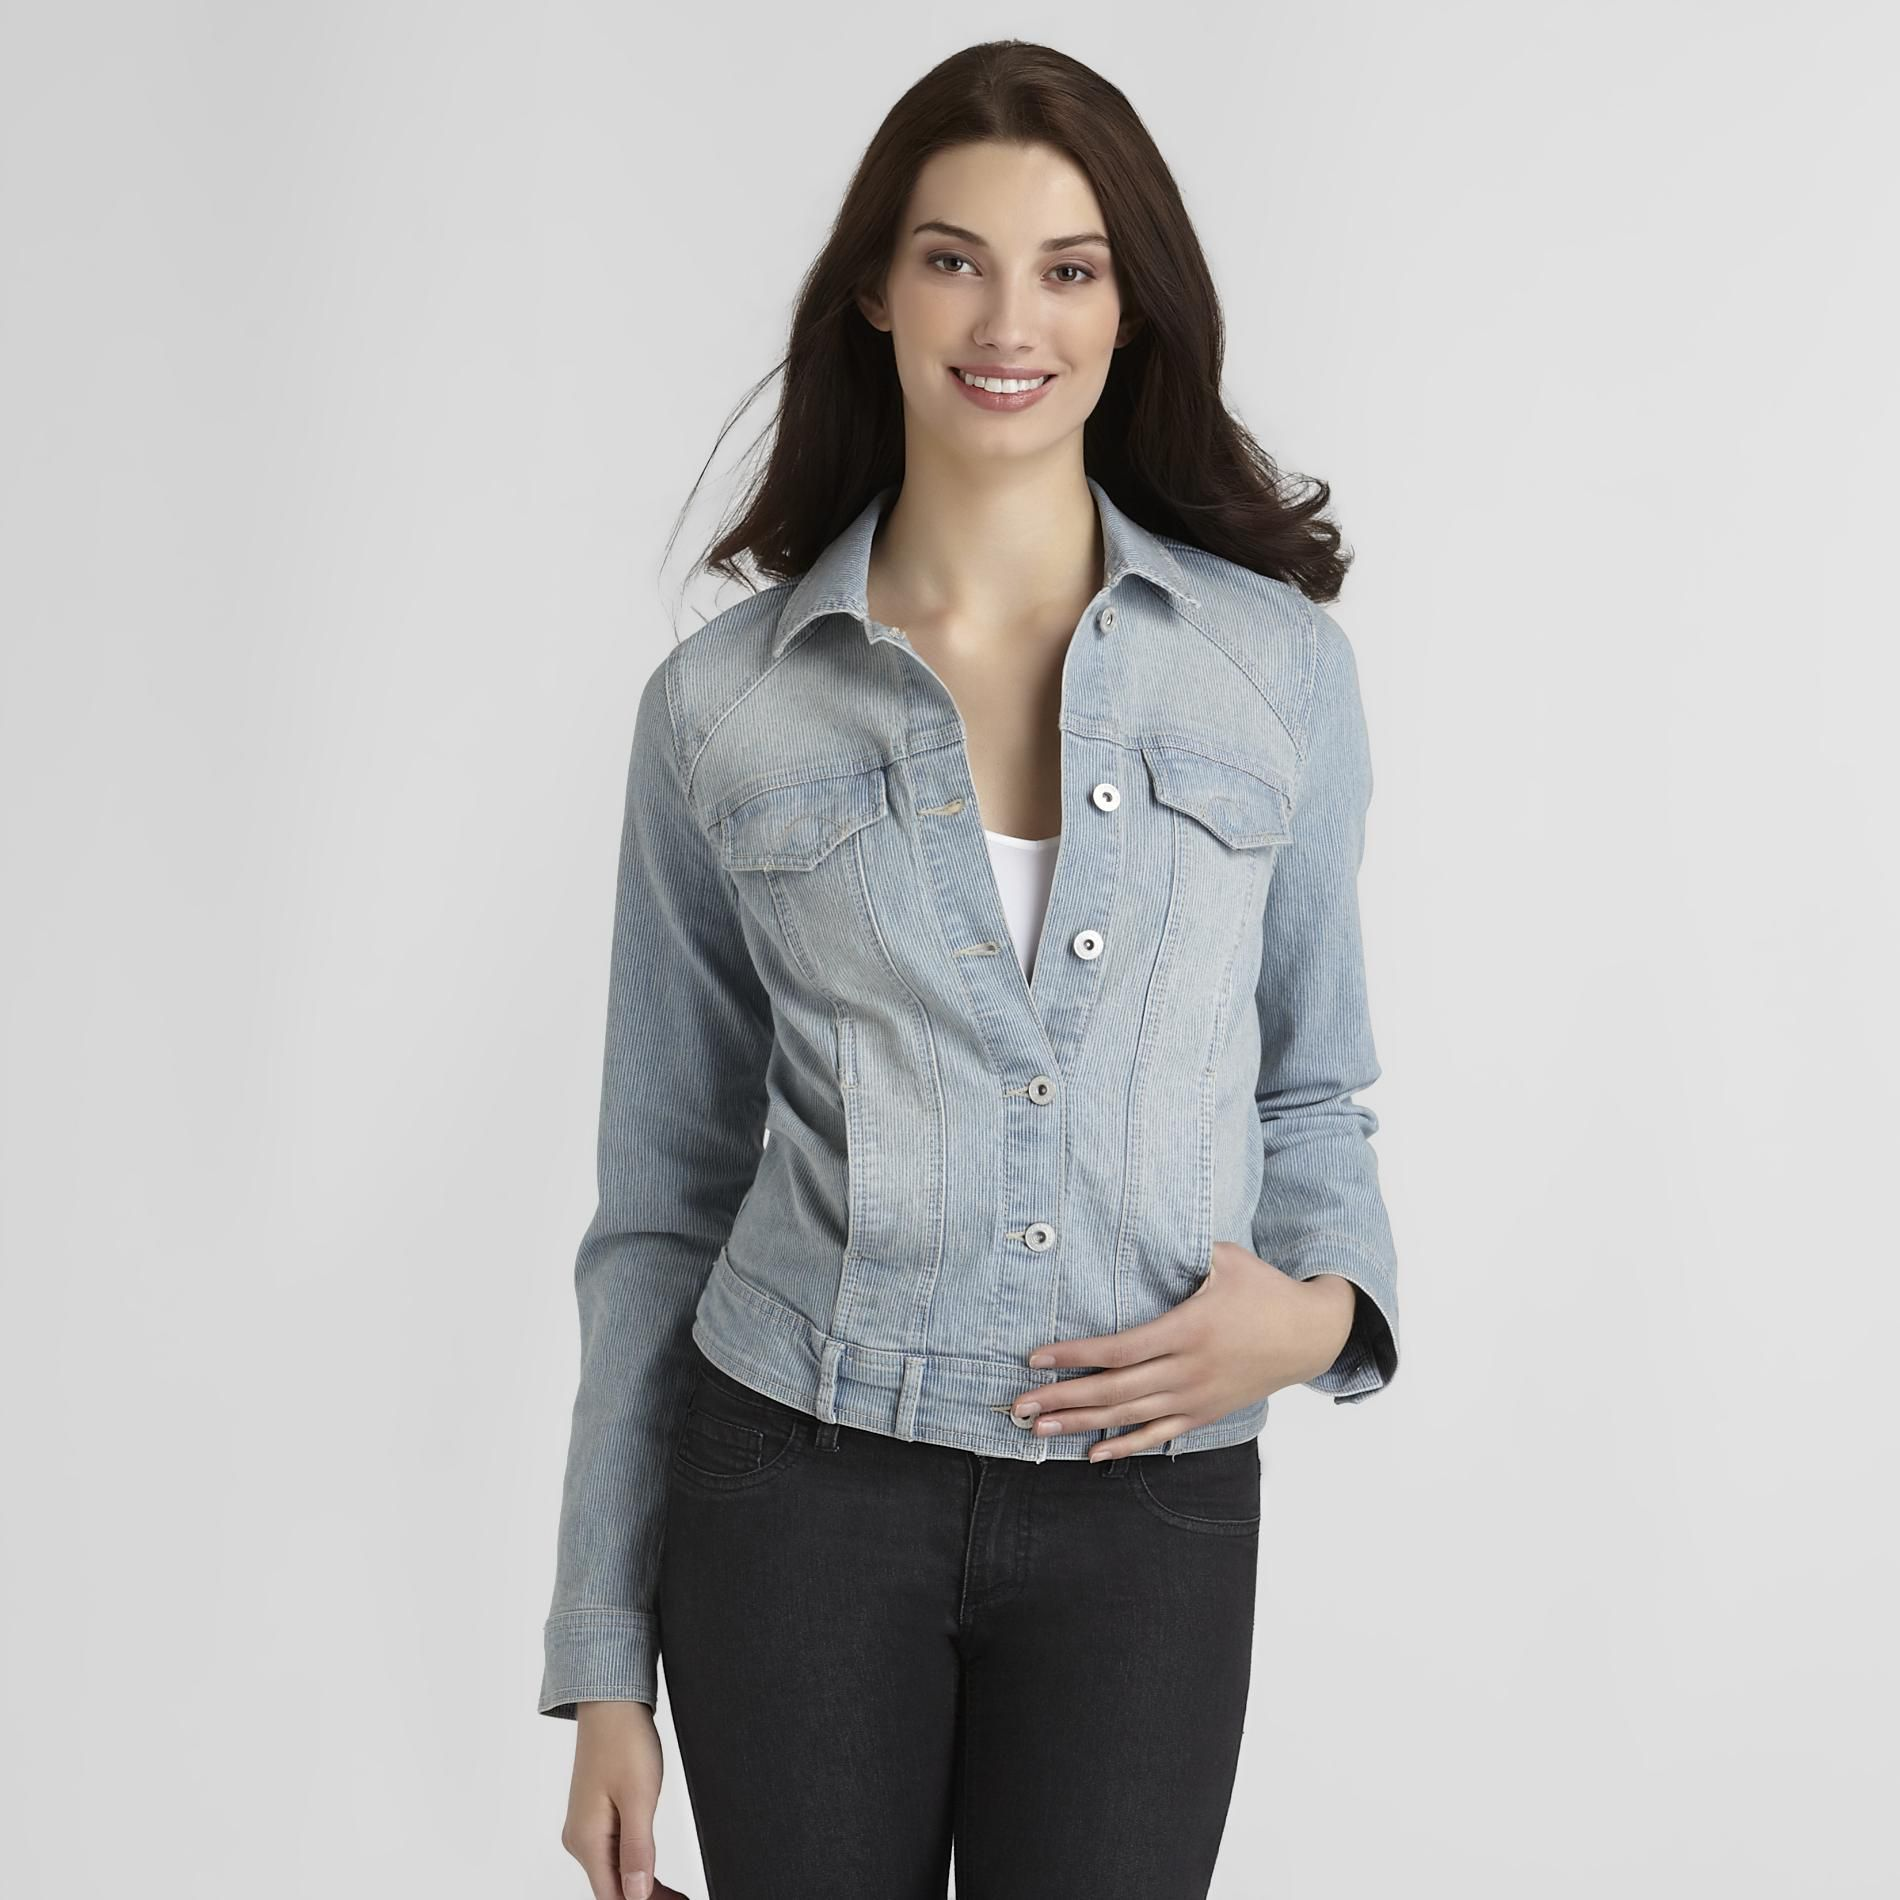 Gloria Vanderbilt Women's Melanie Denim Jacket - Ticking Stripe at Sears.com